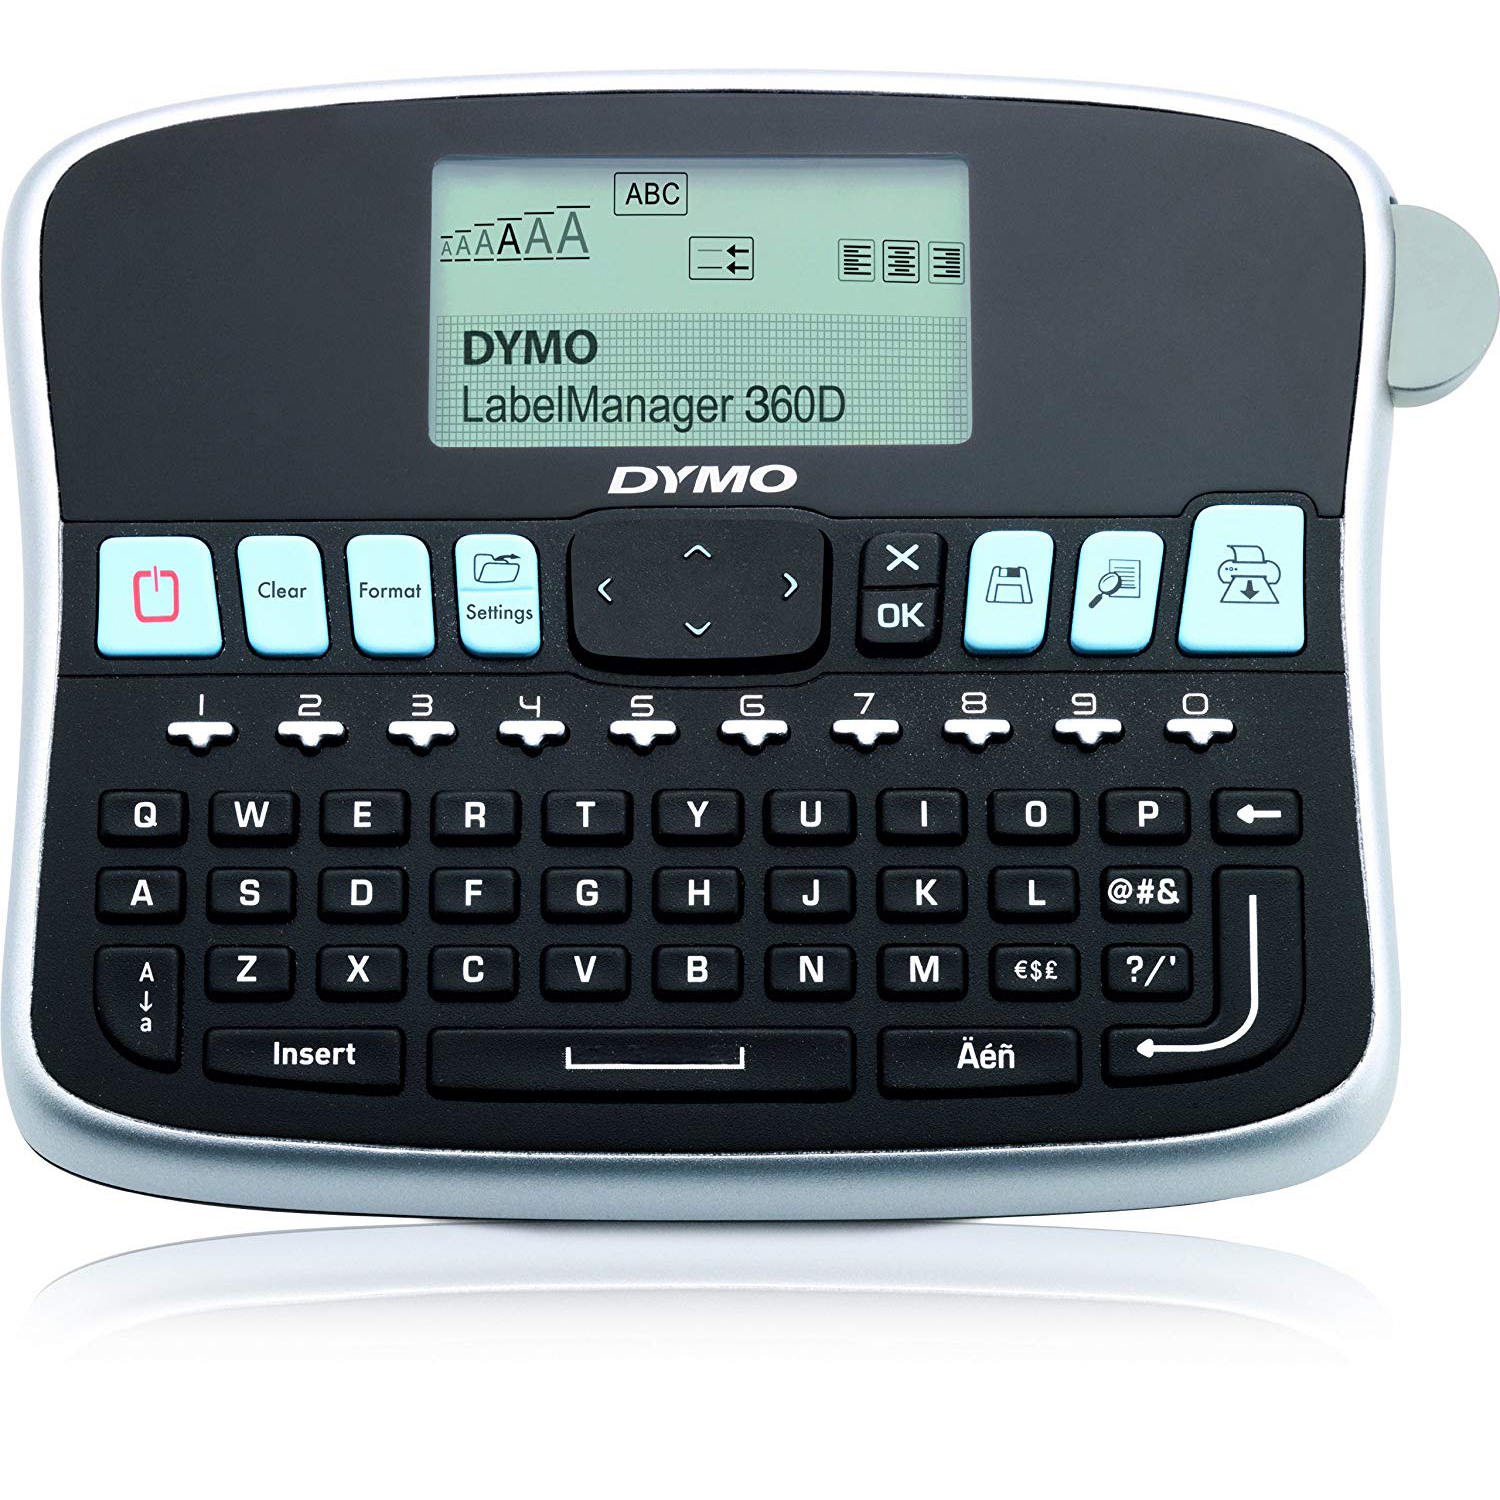 Dymo S0879490 LabelManager 360D Handheld Label Maker with Qwerty Keyboard